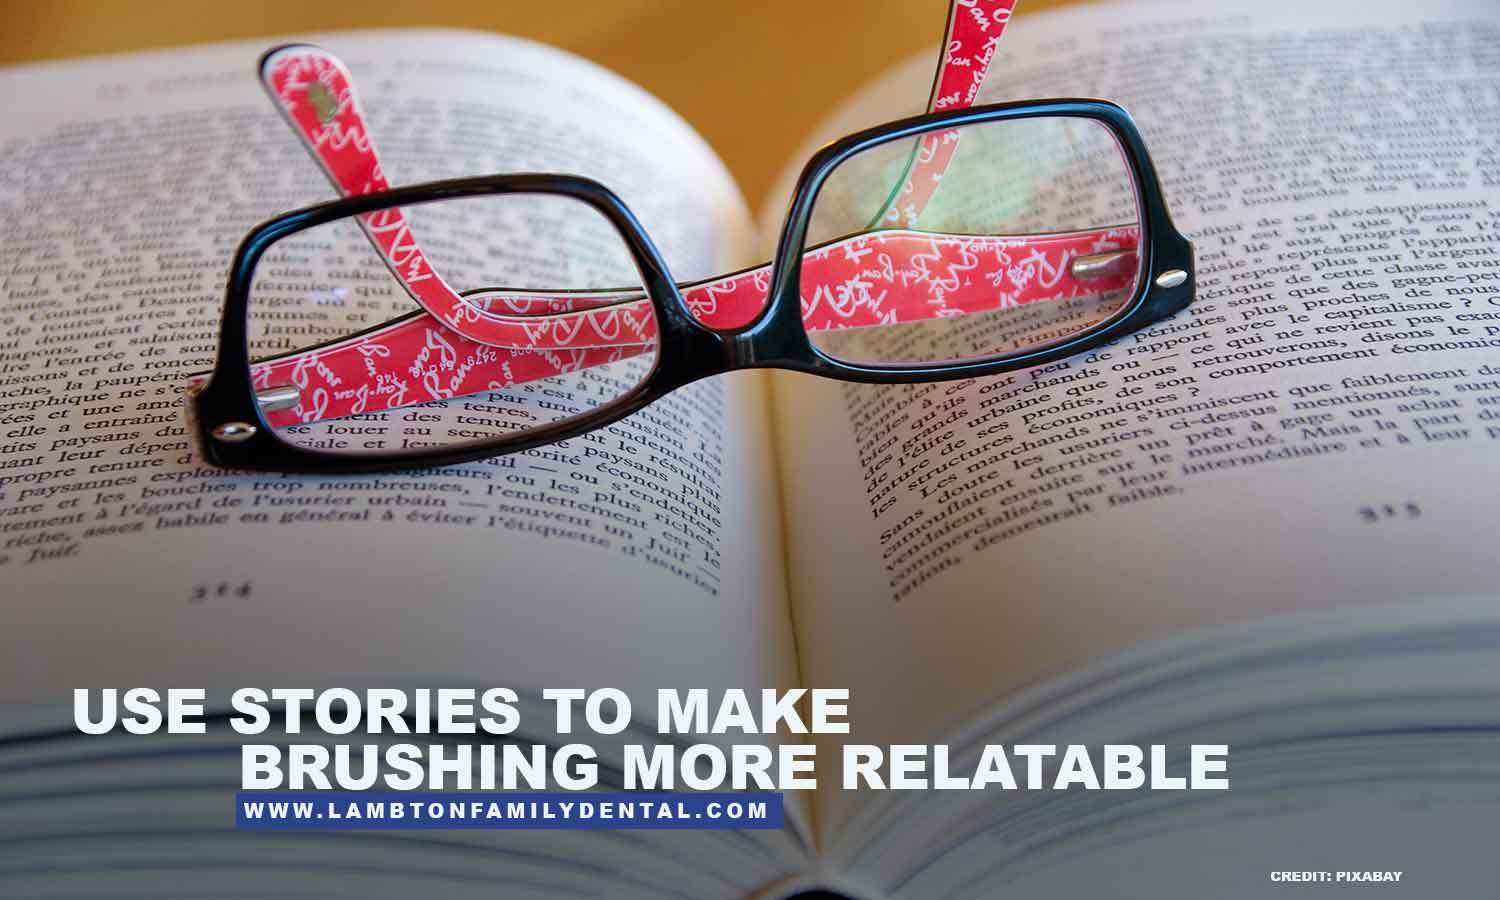 Use stories to make brushing more relatable